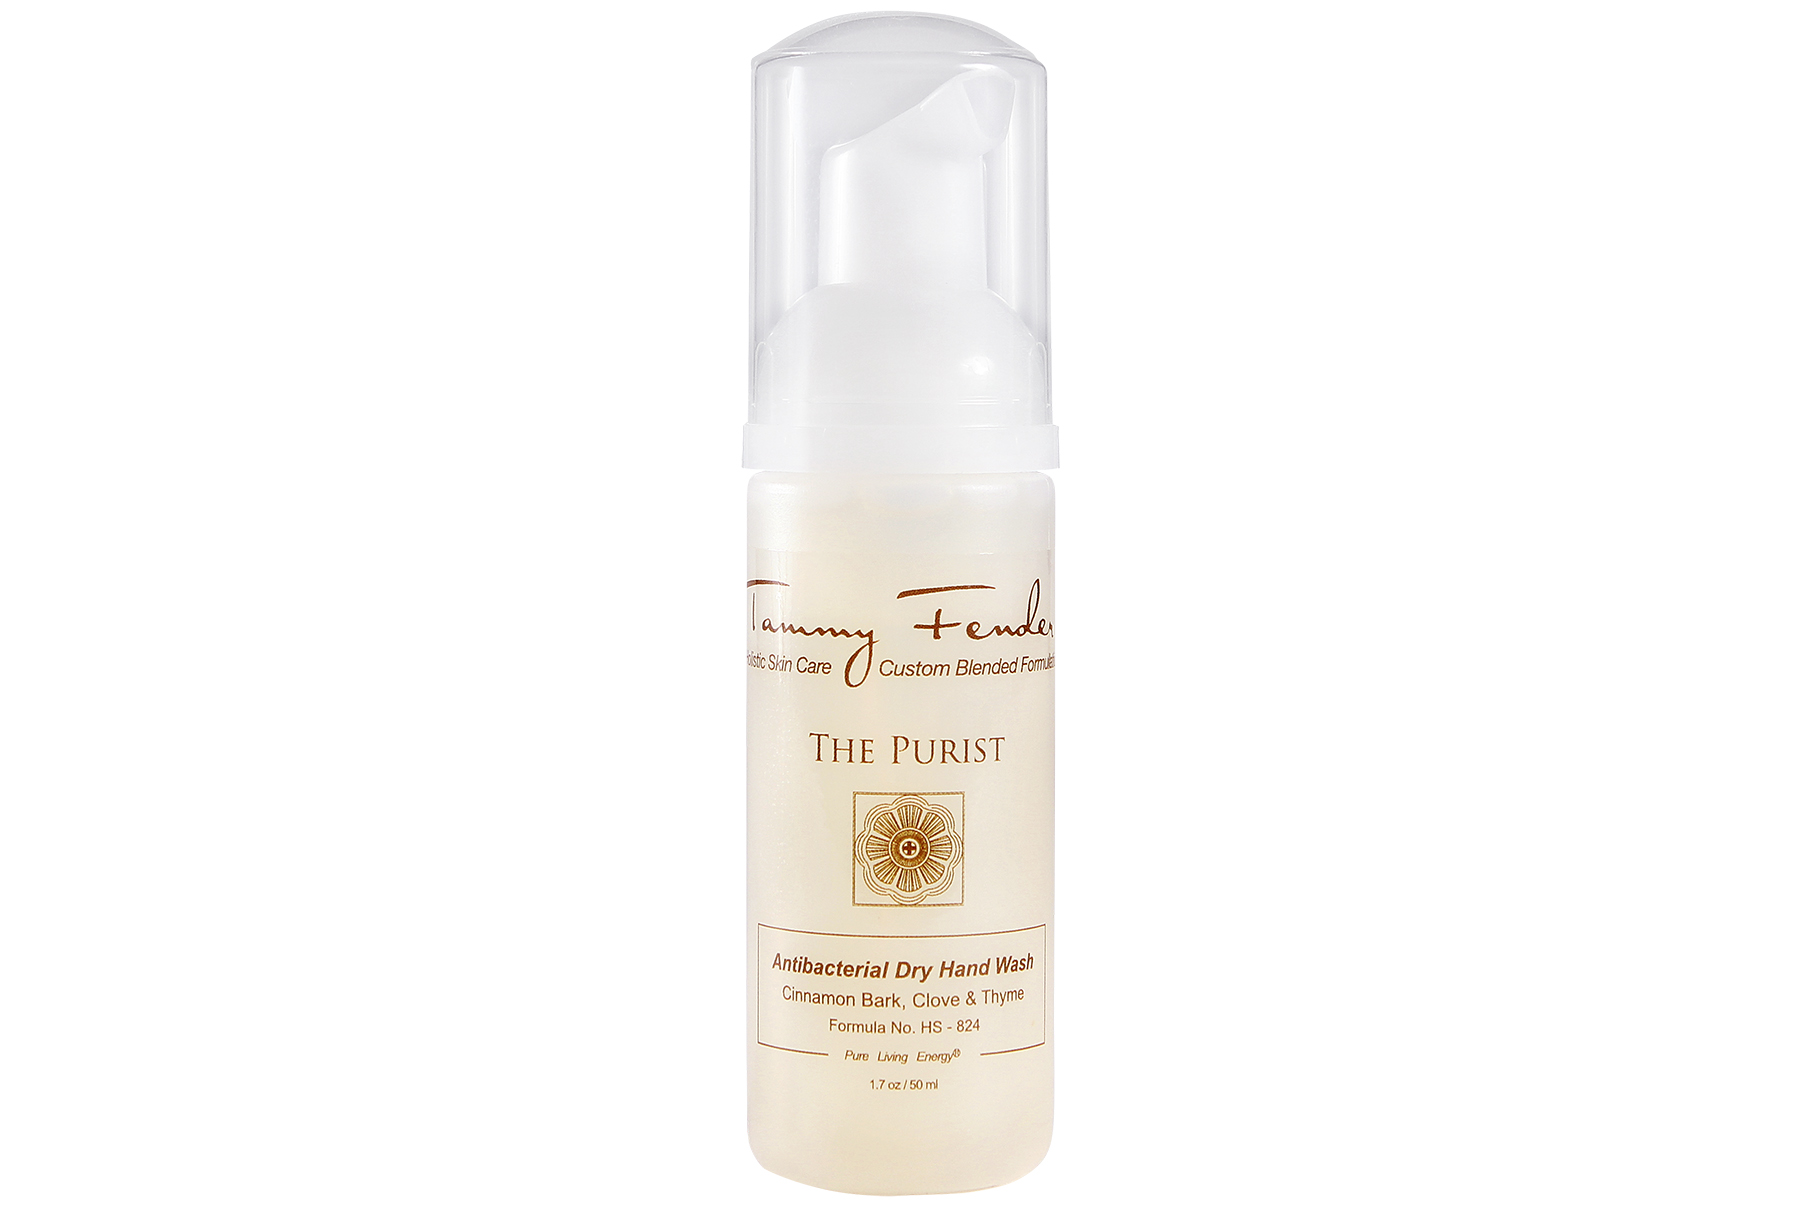 Tammy Fender The Purist Antibacterial Dry Hand Wash